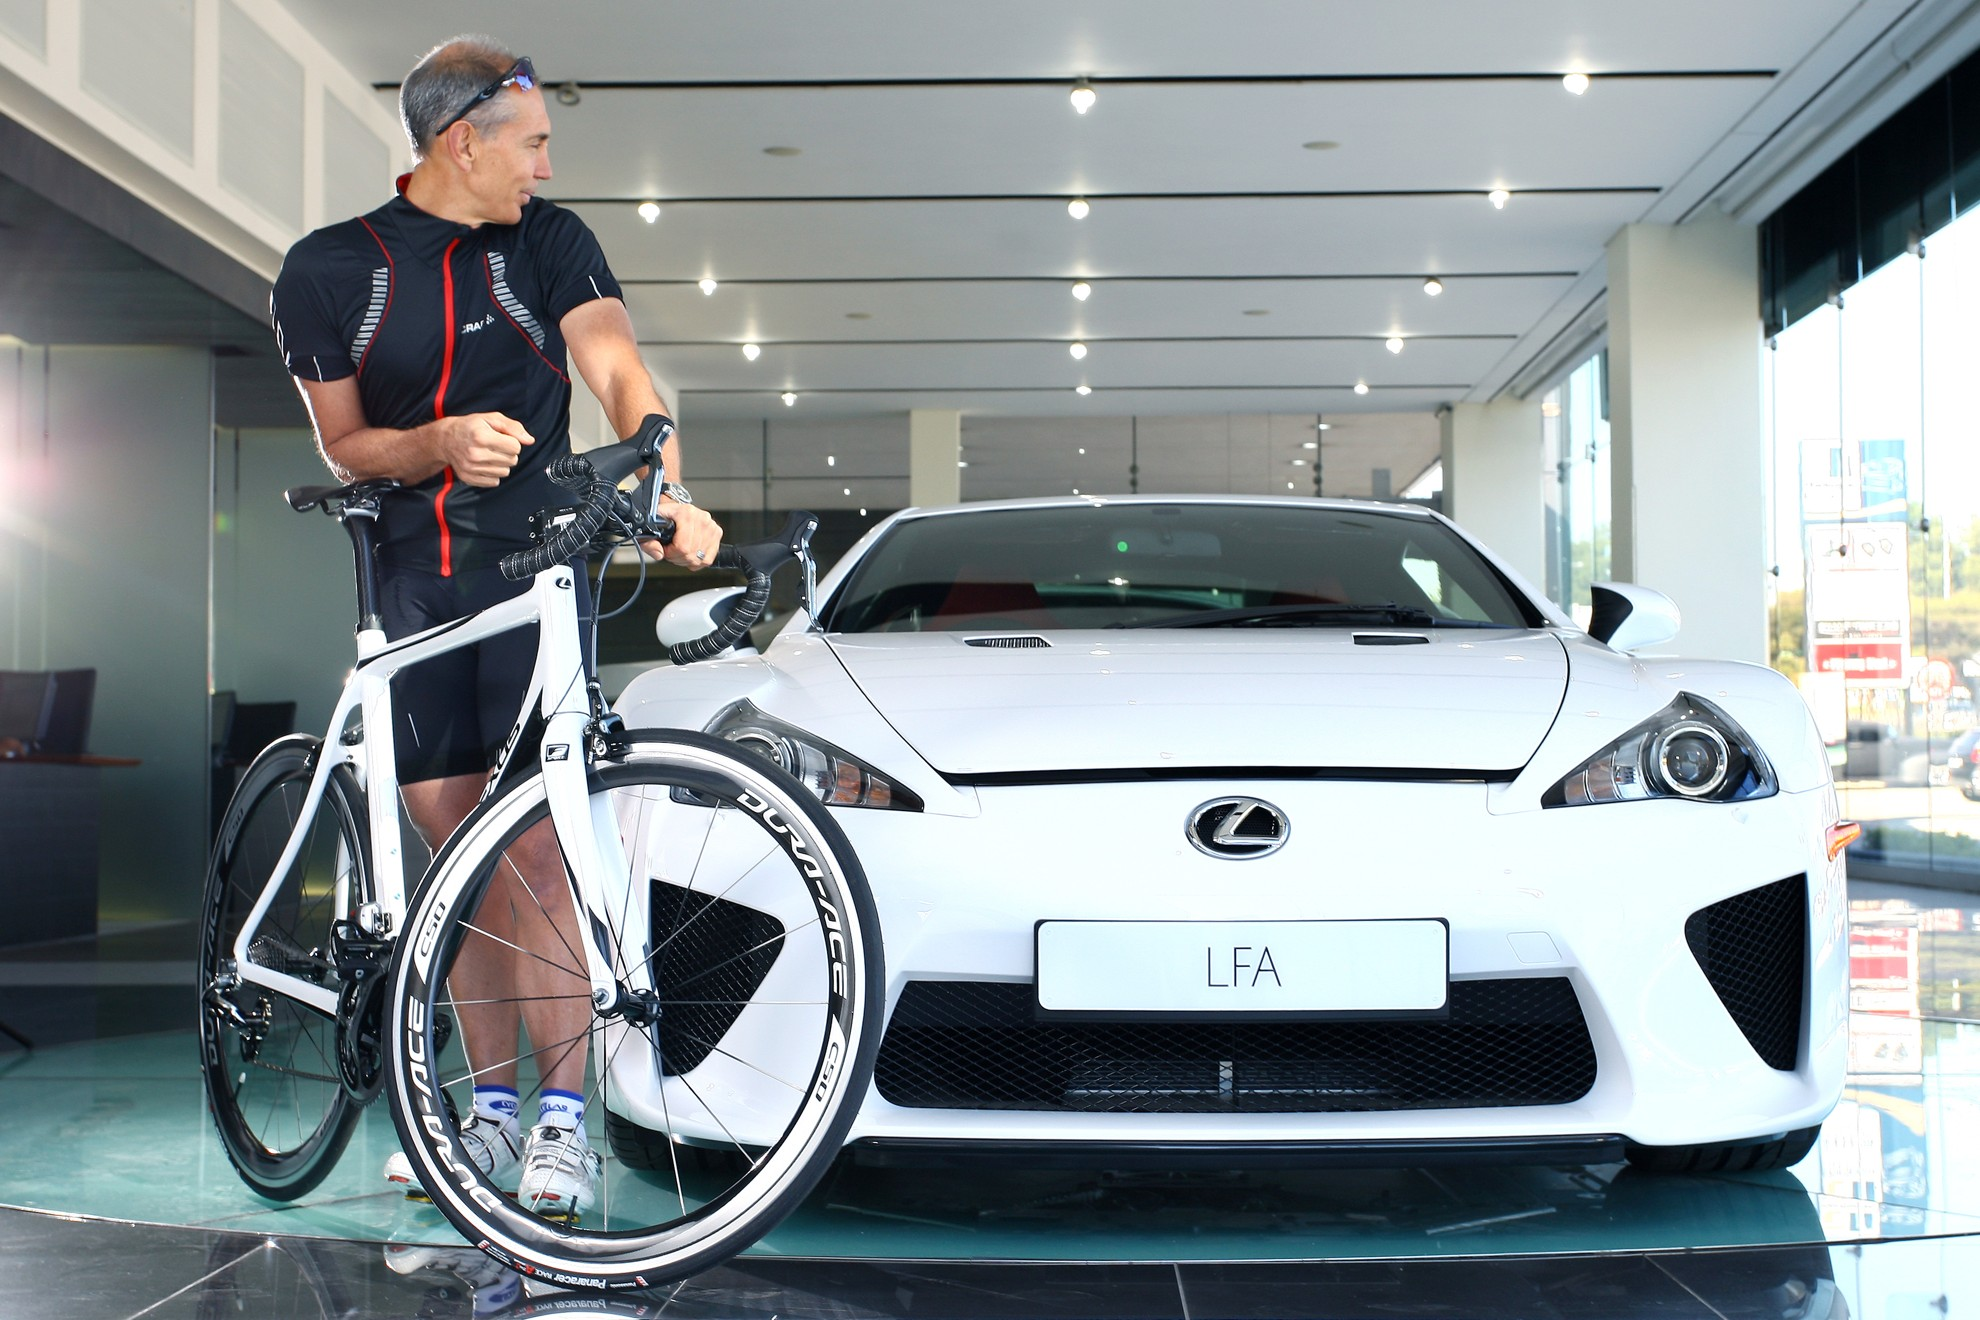 Lexus LFA Bicycle